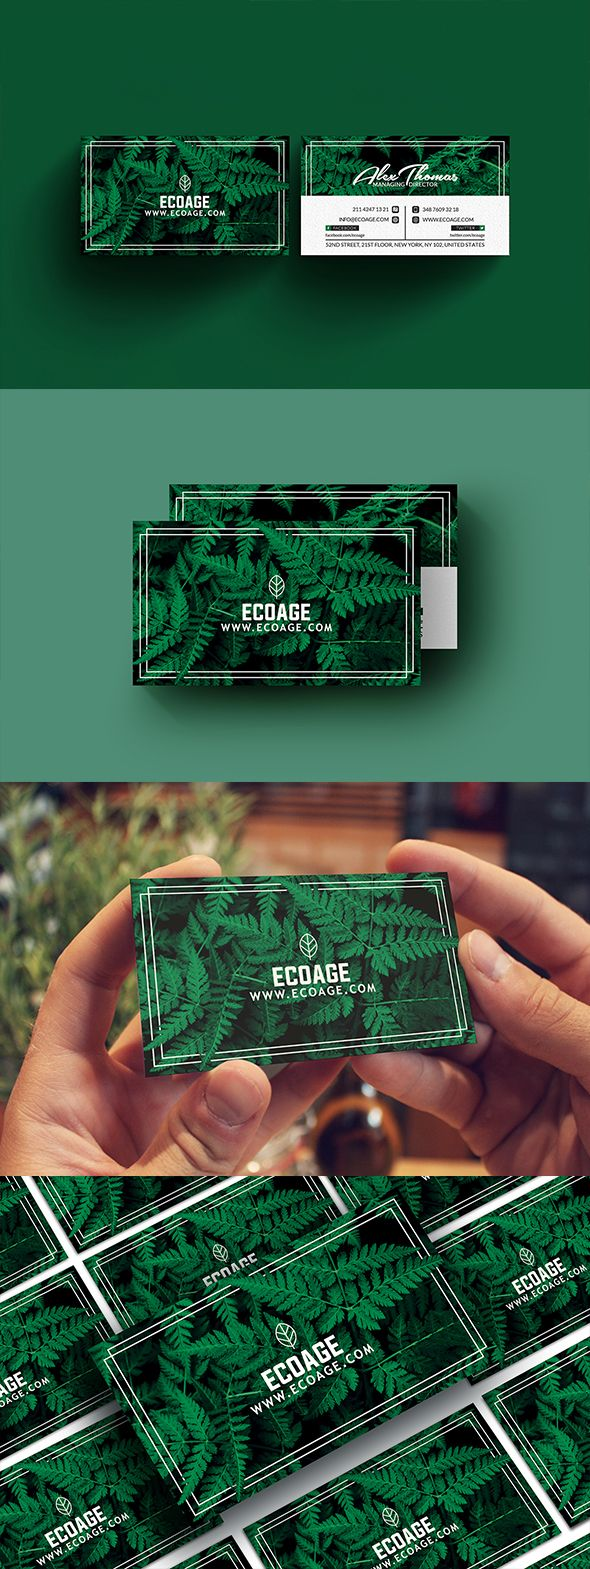 Free Natural Business Card Template - A great business card to make your clients stay in touch with you, and attract some new ones down the line. This stylish design will attract attention and will leave a lasting impression to your audience. DOWNLOAD: https://www.facebook.com/groups/271913649919398/